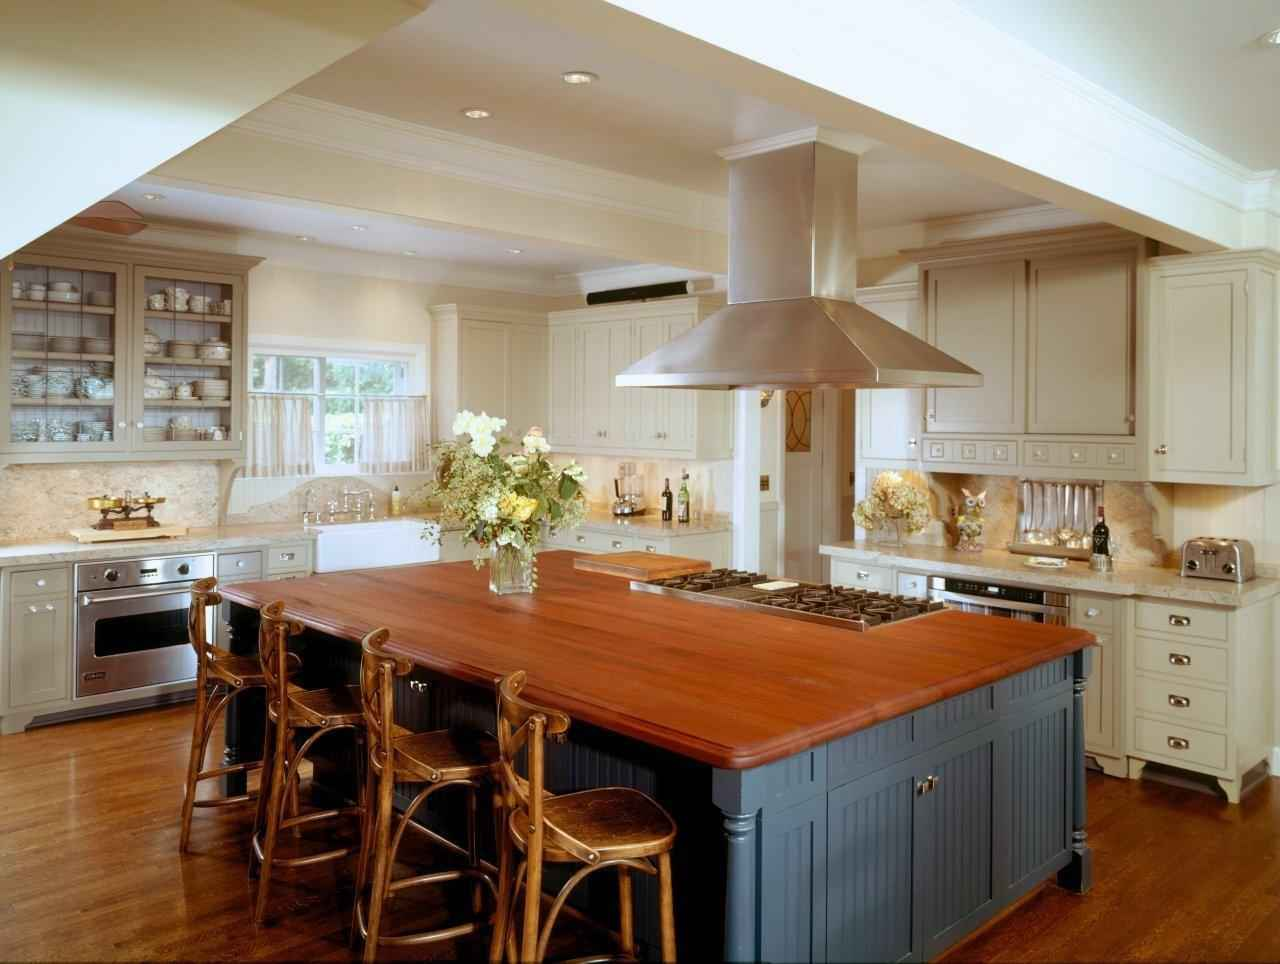 Cheap Countertop Ideas for your Kitchen on Counter Top Decor  id=22316